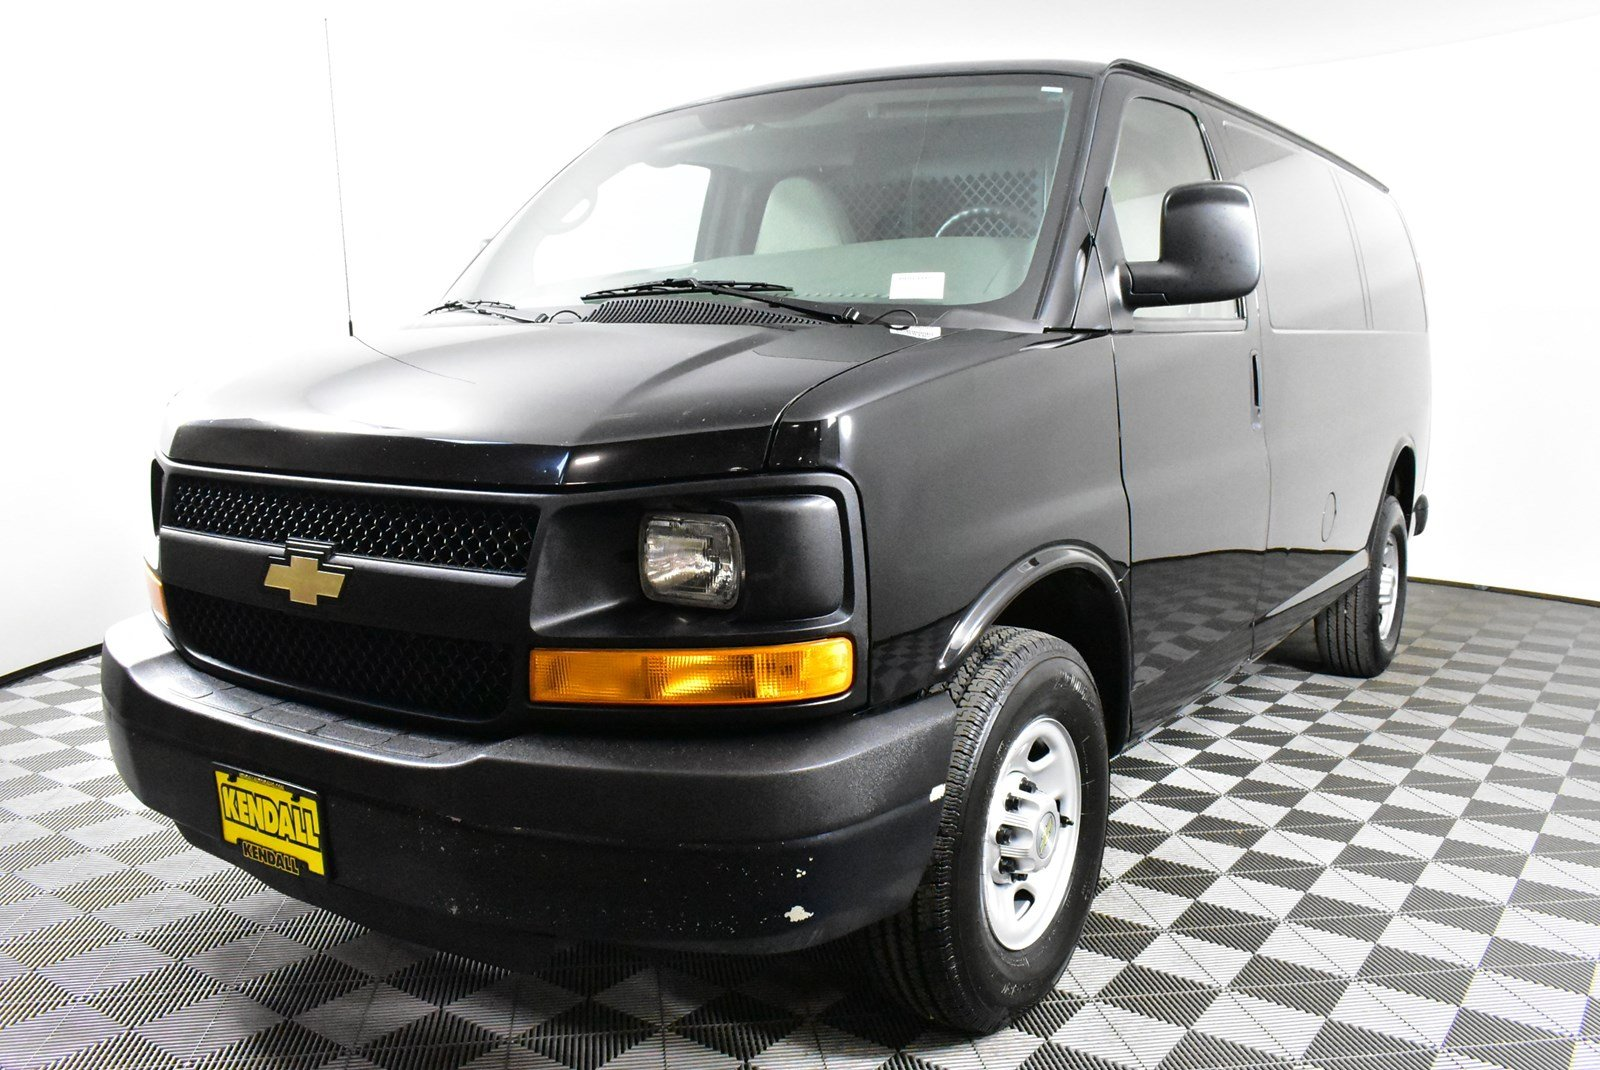 ff9975b3bd Pre-Owned 2013 Chevrolet Express Cargo Van 2500 RWD 135 in Nampa ...